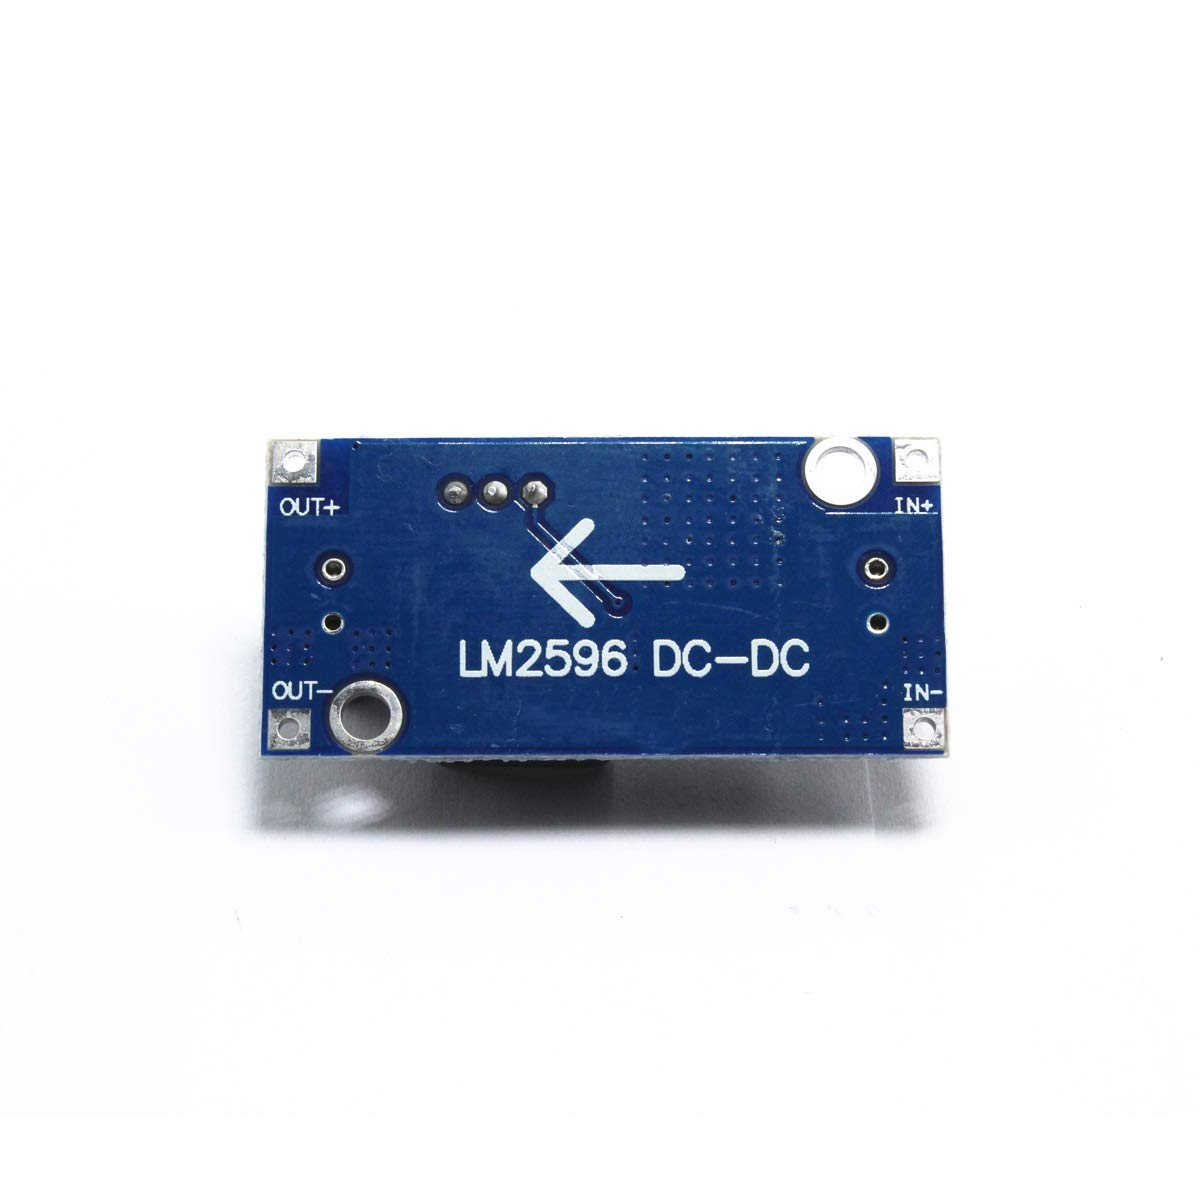 10 Pack LM2596 DC to DC High Efficiency Voltage Regulator 3.0-40V to 1.5-35V Buck Converter DIY Power Supply Step Down Module